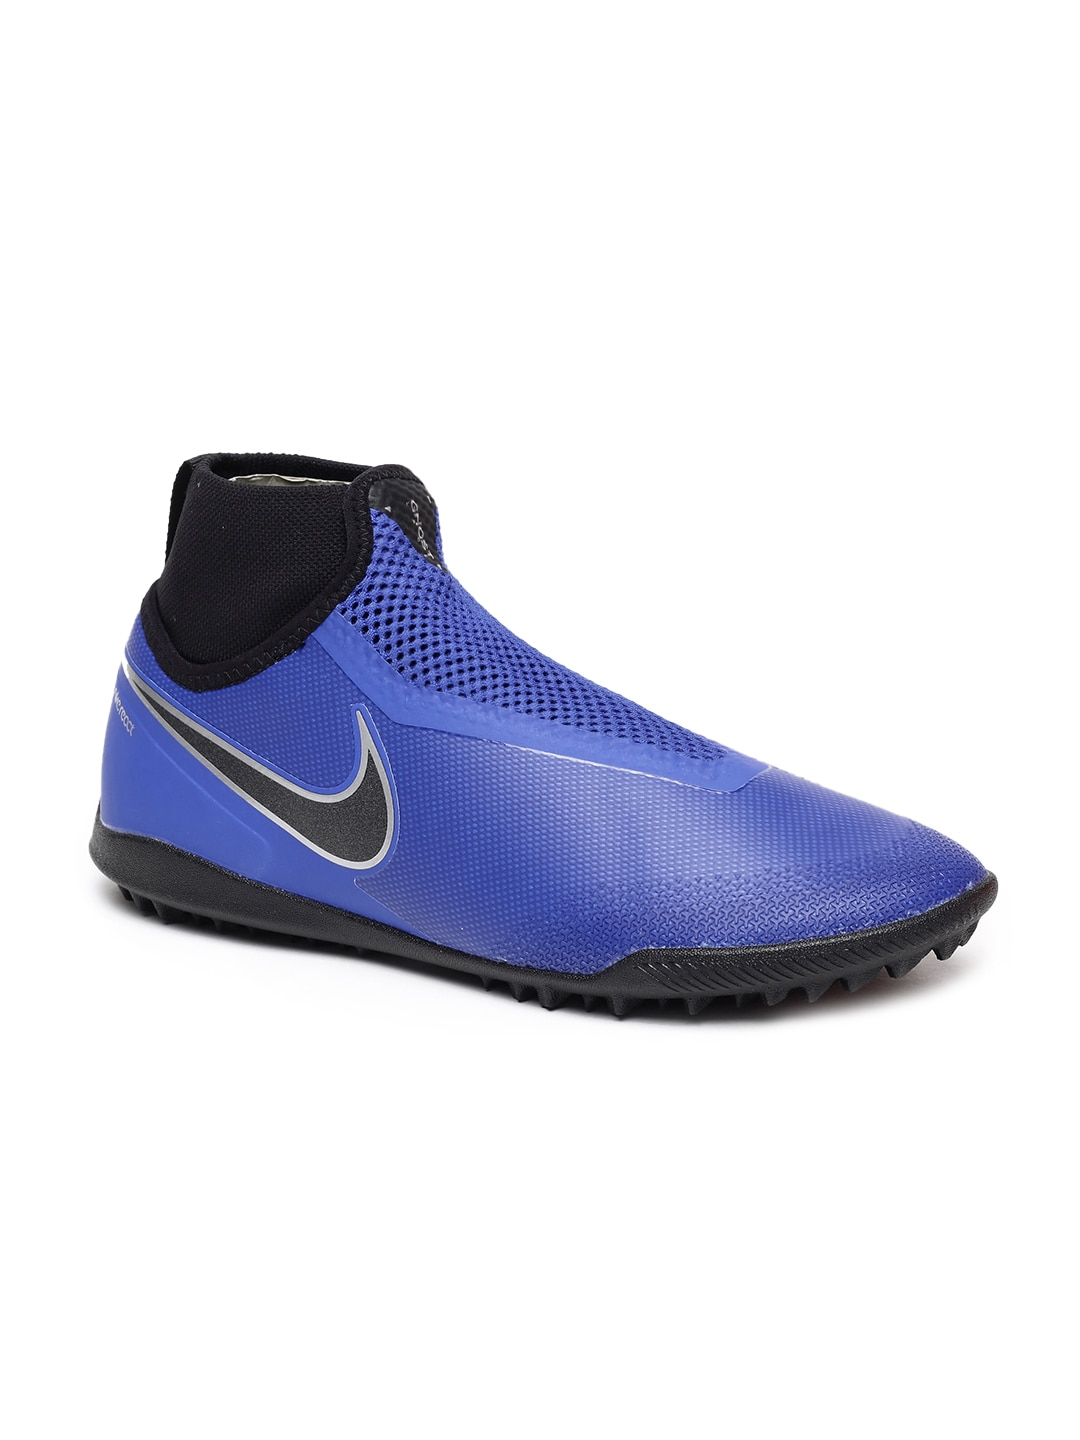 0fc5e5d82bf2f Nike Edition - Buy Nike Edition online in India